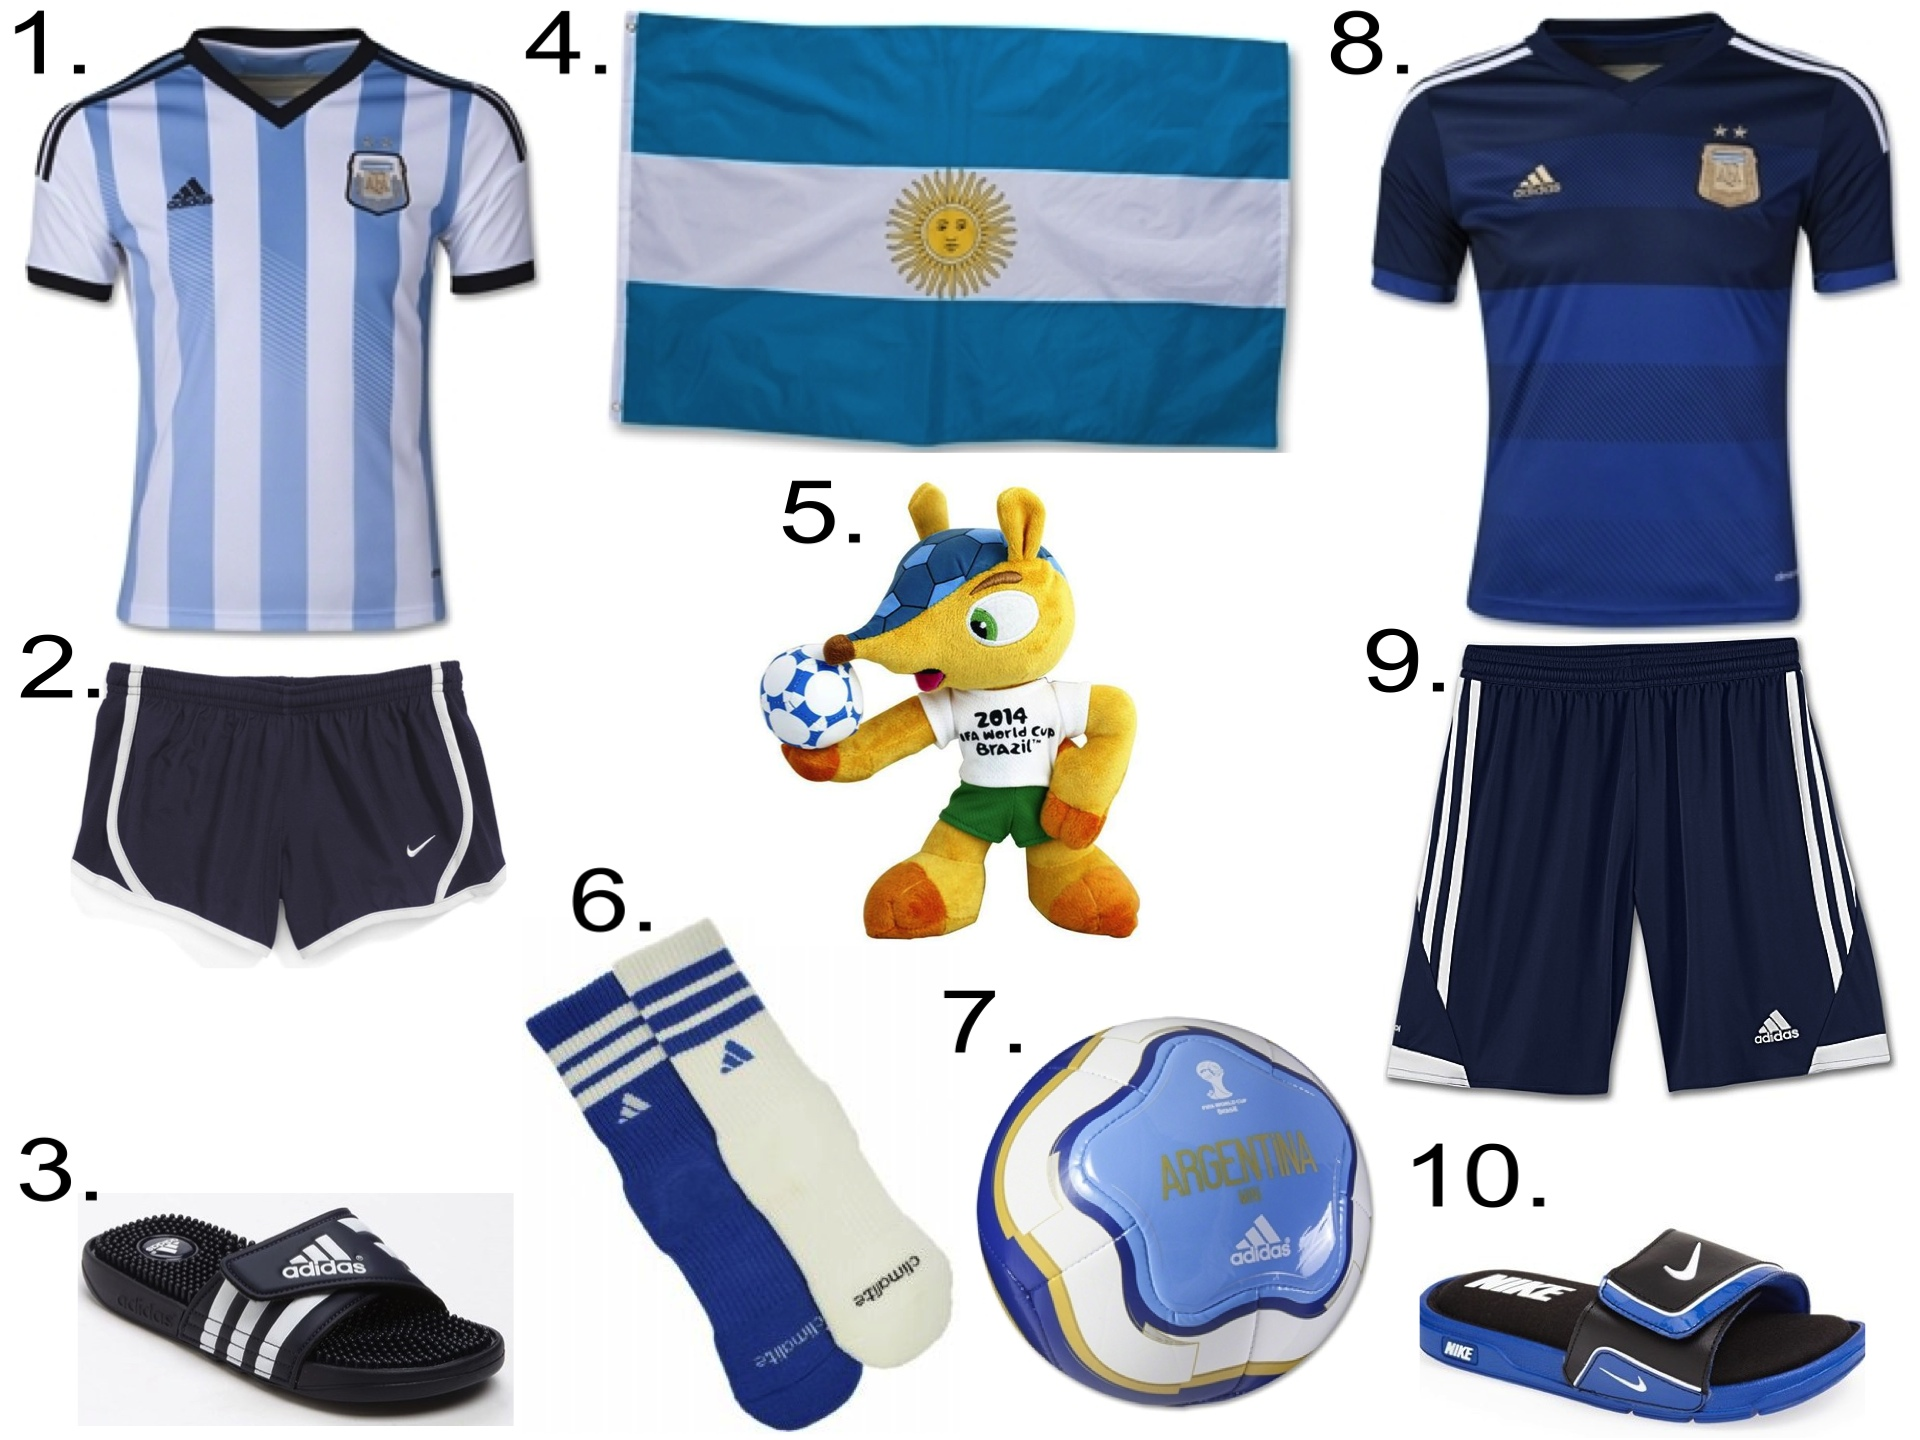 ARGENTINA NATIONAL SOCCER TEAM  1.   Argentina 2014 Youth Home Soccer Jersey  2.  Nike 'Tempo' Track Shorts  3.  adidas 'Adissage' Sandal  4.  Argentina Flag  5.  2014 FIFA world cup mascot Armadillo Fuleco plush toy  6.  adidas Kids' Youth Team Crew Socks  7.  Argentina 14 Capitano Mini Ball  8.  Argentina 2014 Youth Away Soccer Jersey  9.  adidas TIRO 13 SHORTS  10.  Nike 'Comfort Slide 2014' Sandal